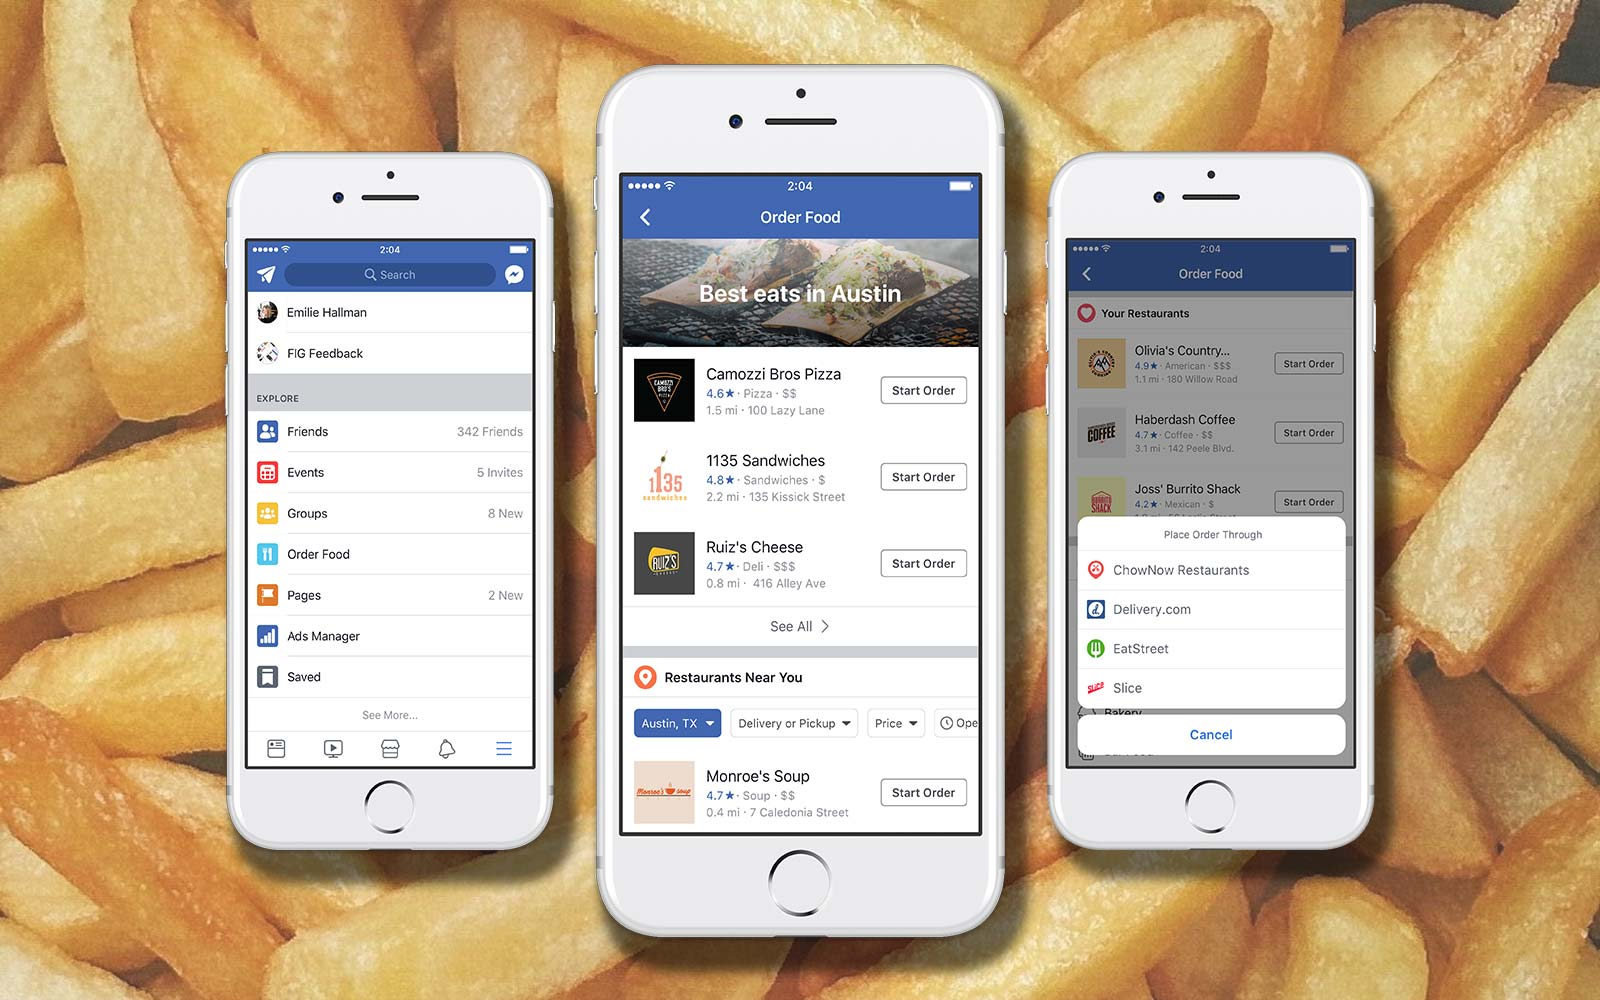 Facebook Launches New Feature For Ordering Food Within The App